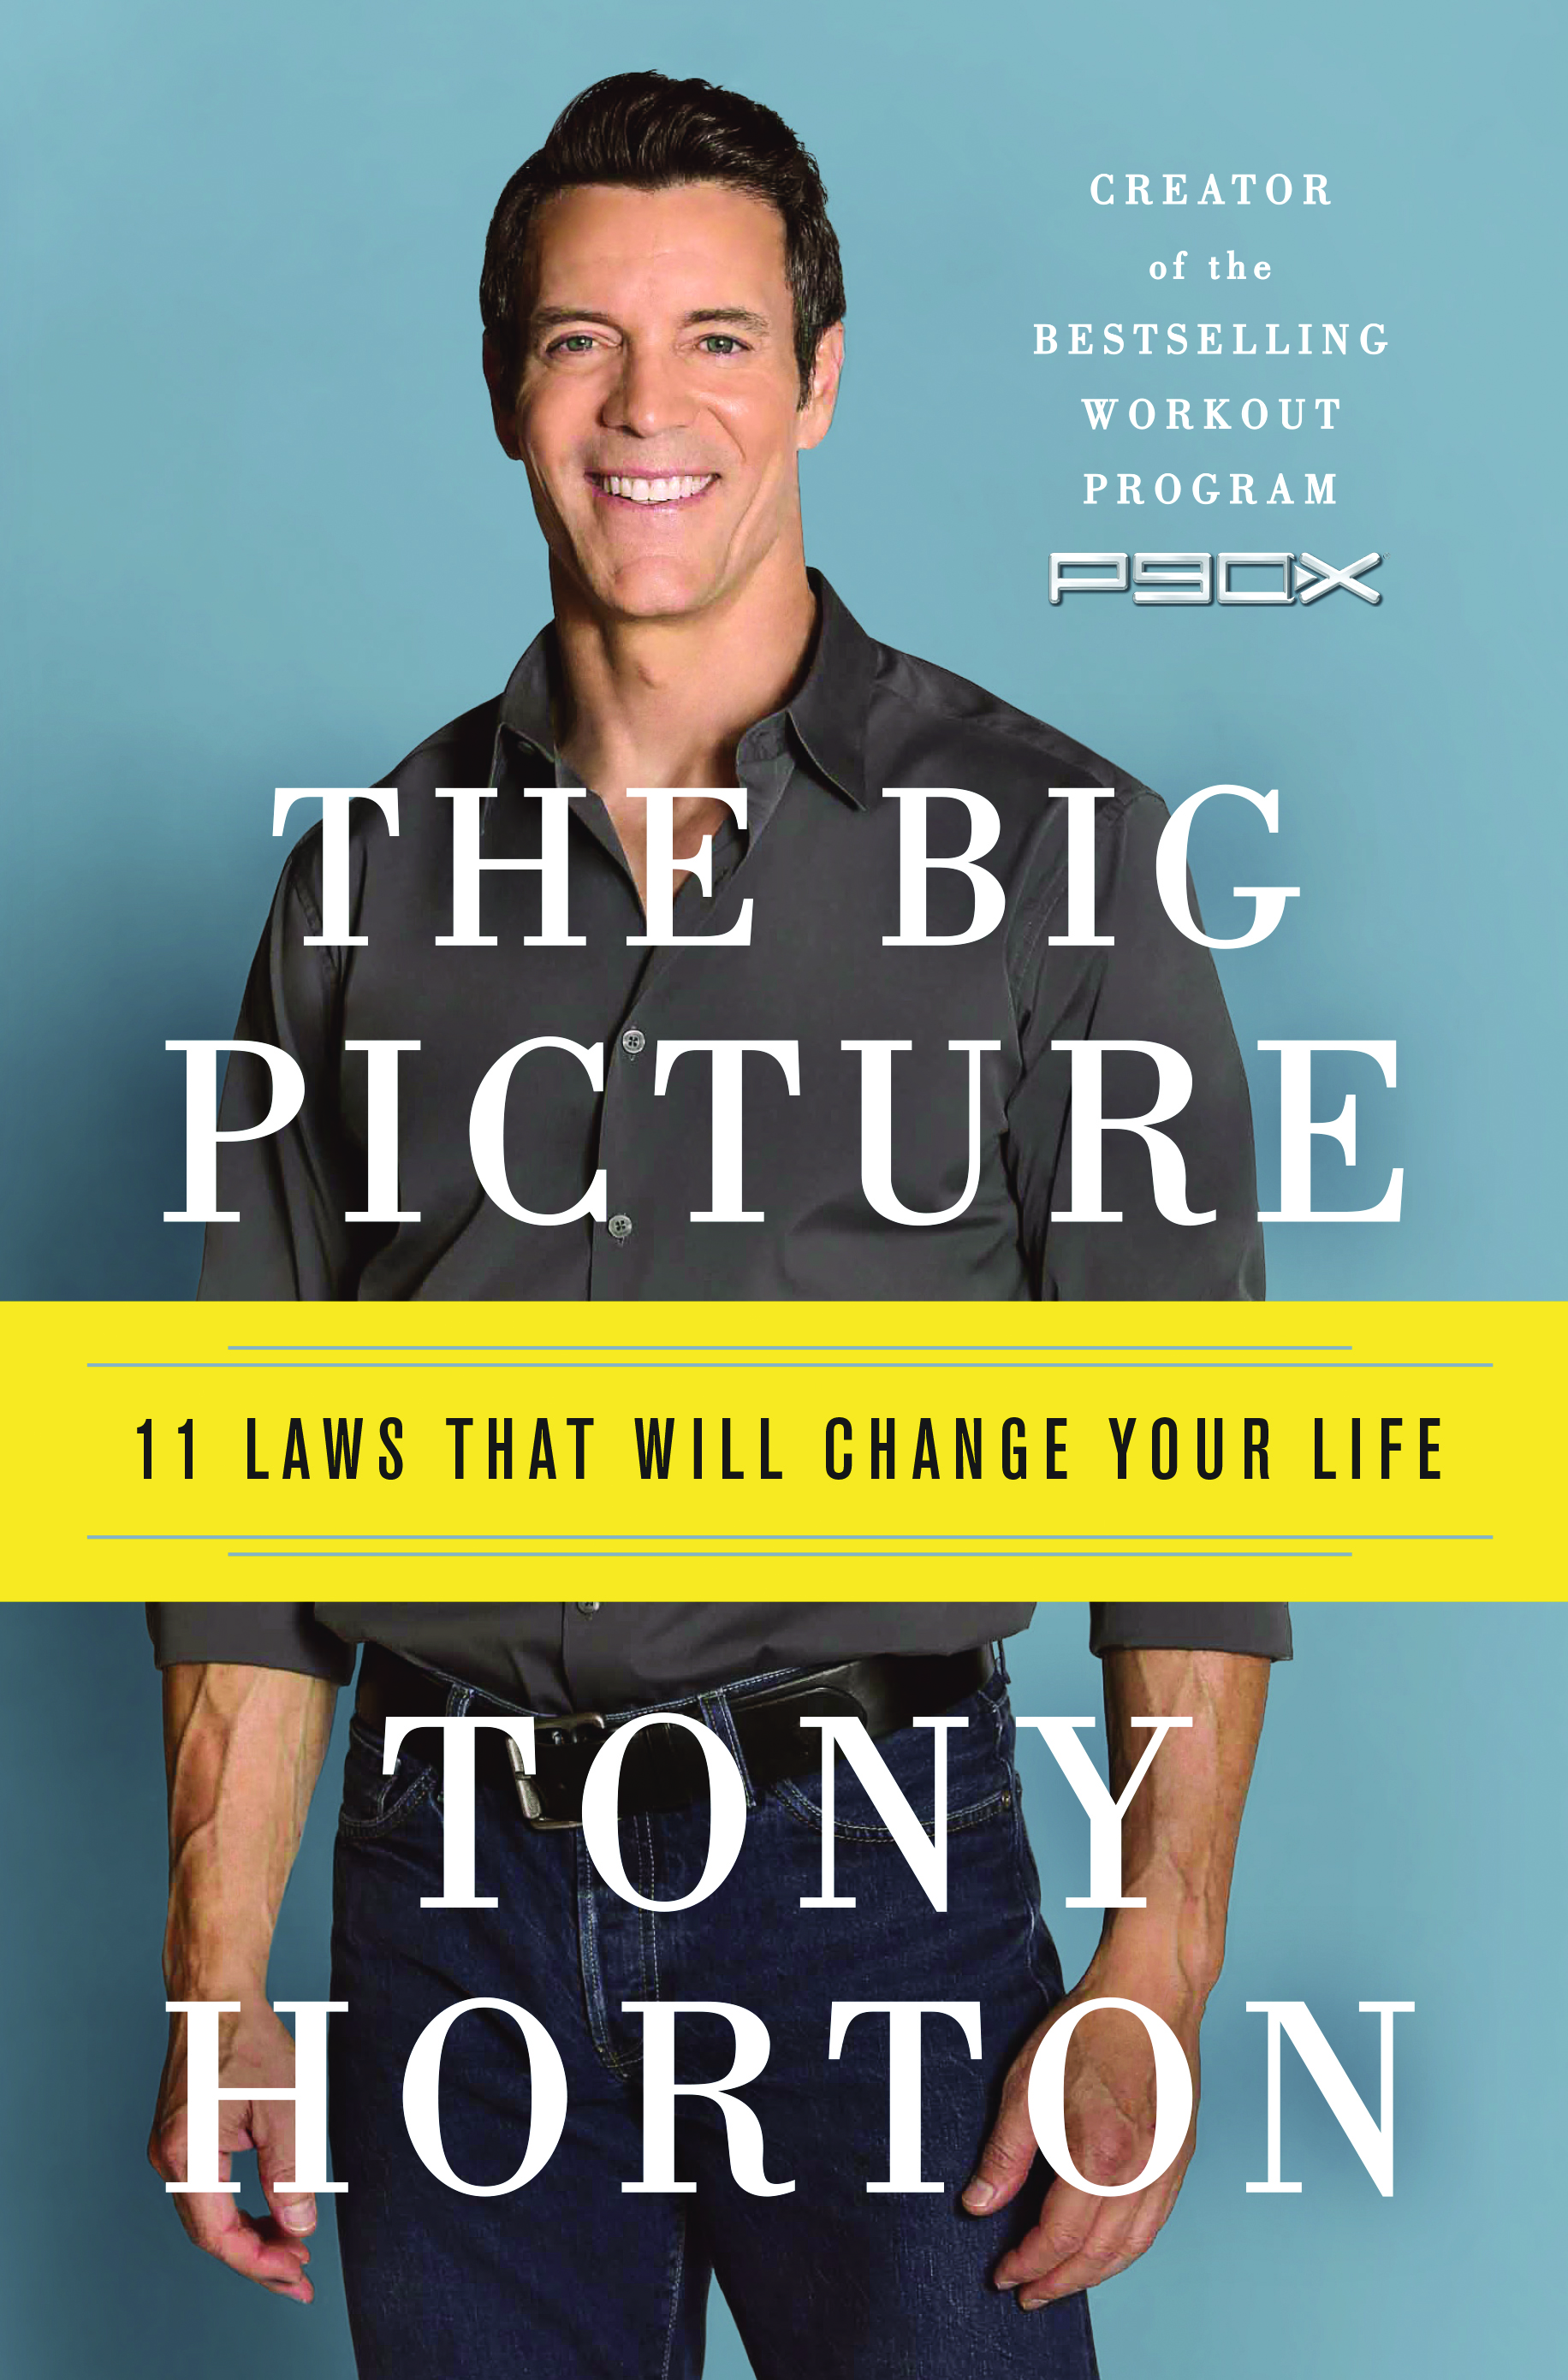 Life According to Tony Horton